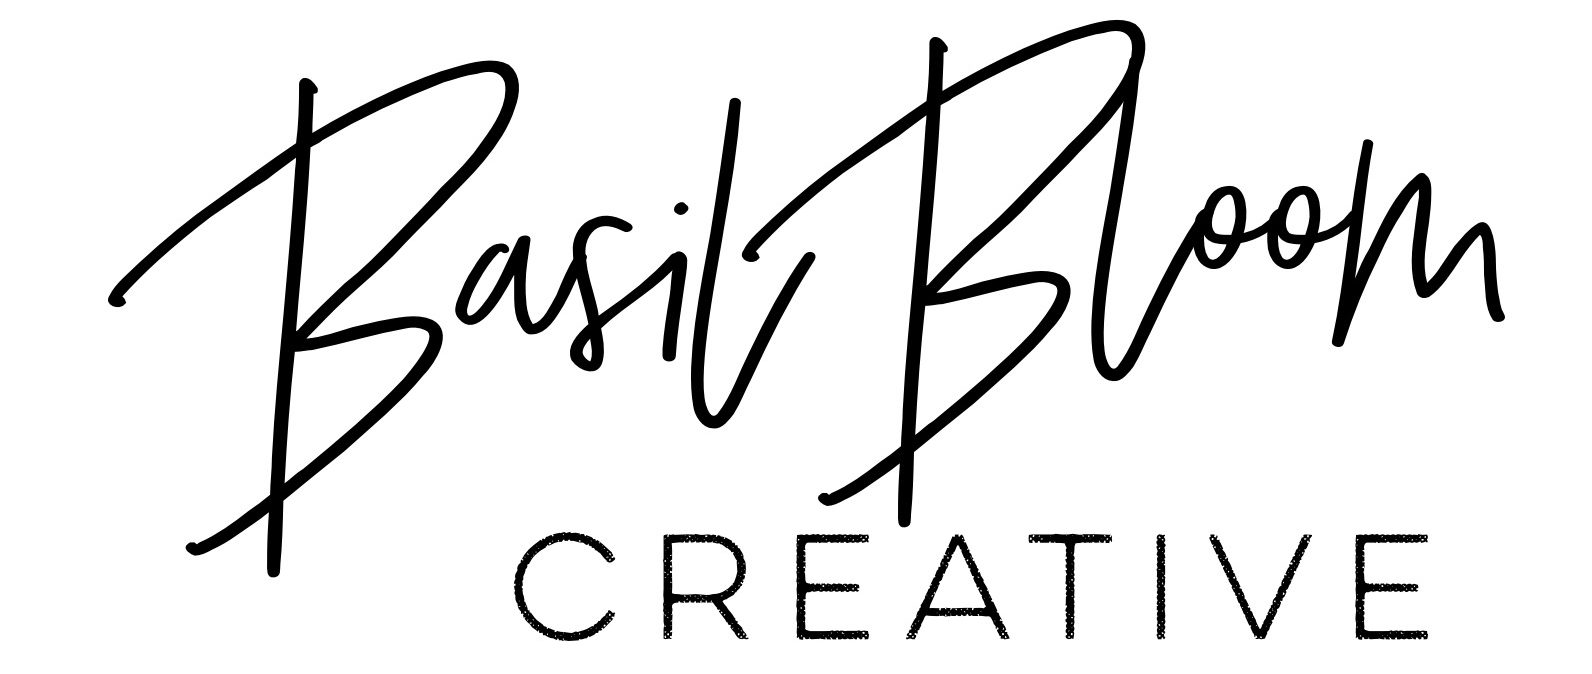 Basil Bloom Creative